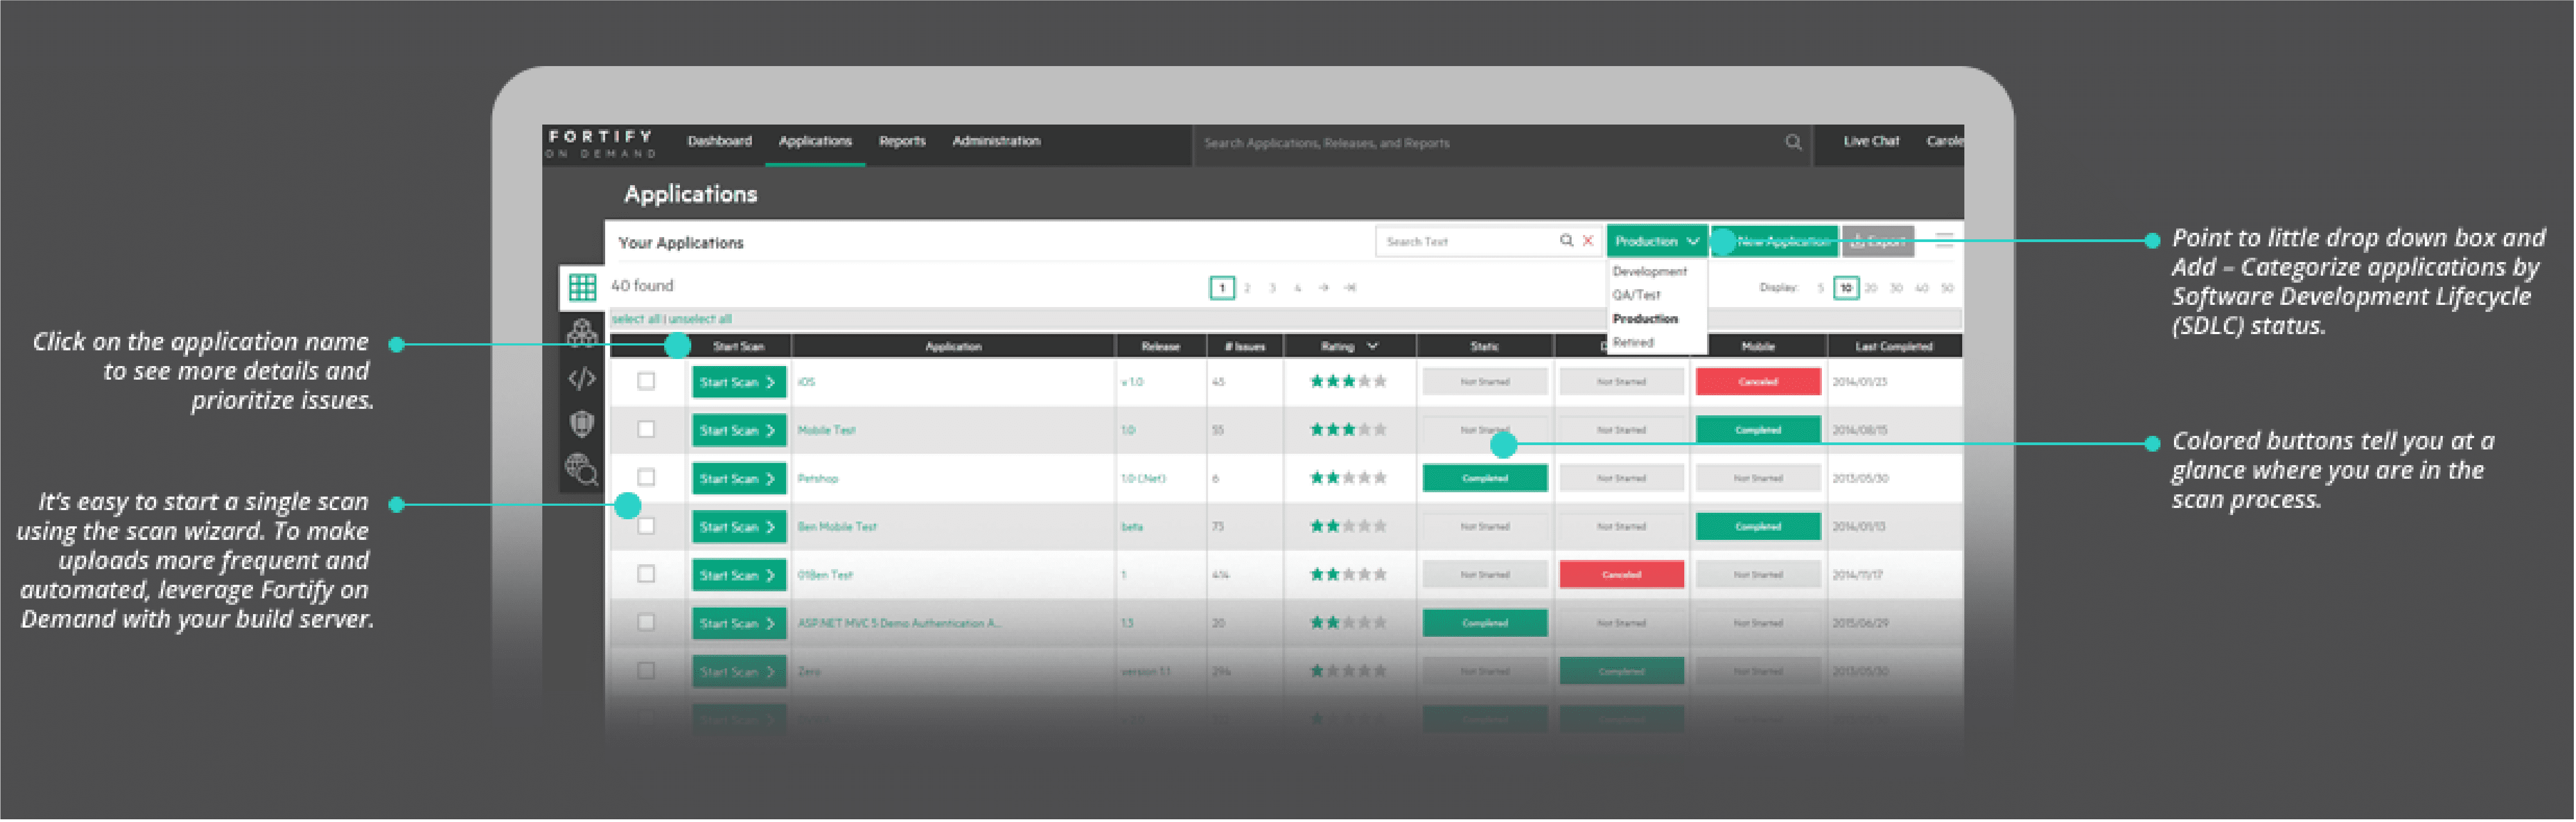 Get a working view of all your apps, filtered and categorized based on your criteria.